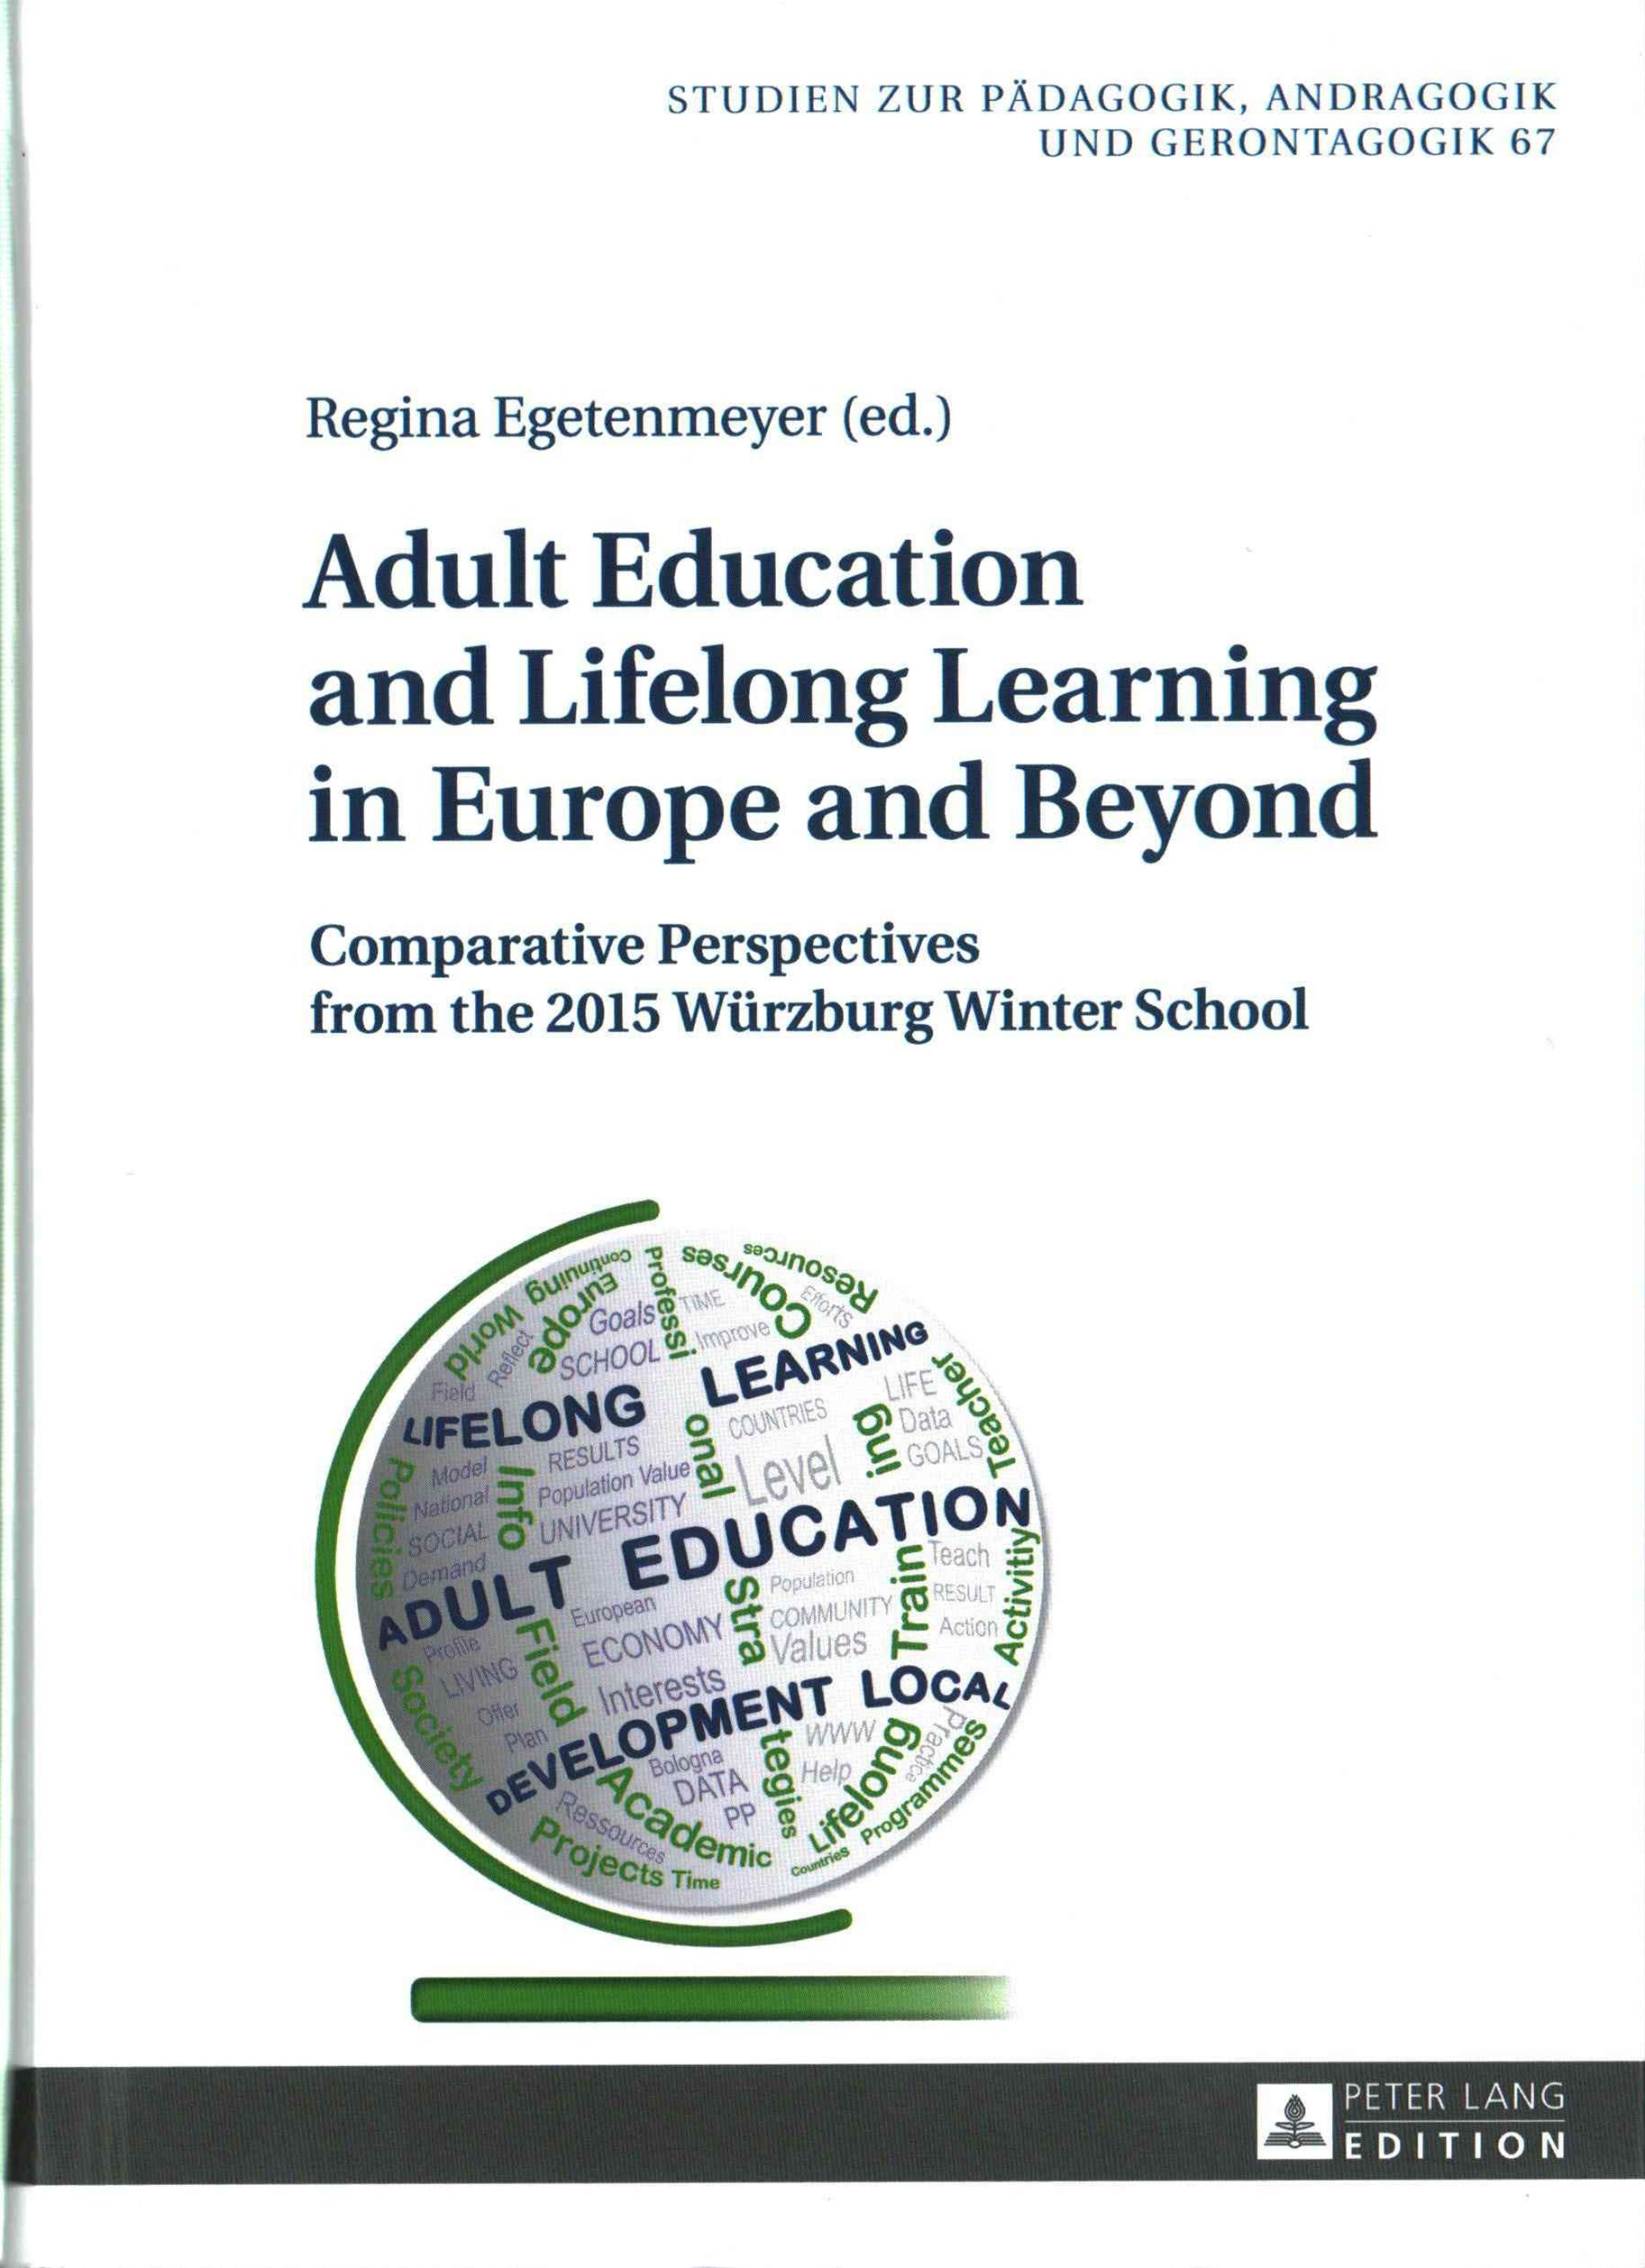 Adult Education and Lifelong Learning in Europe and Beyond